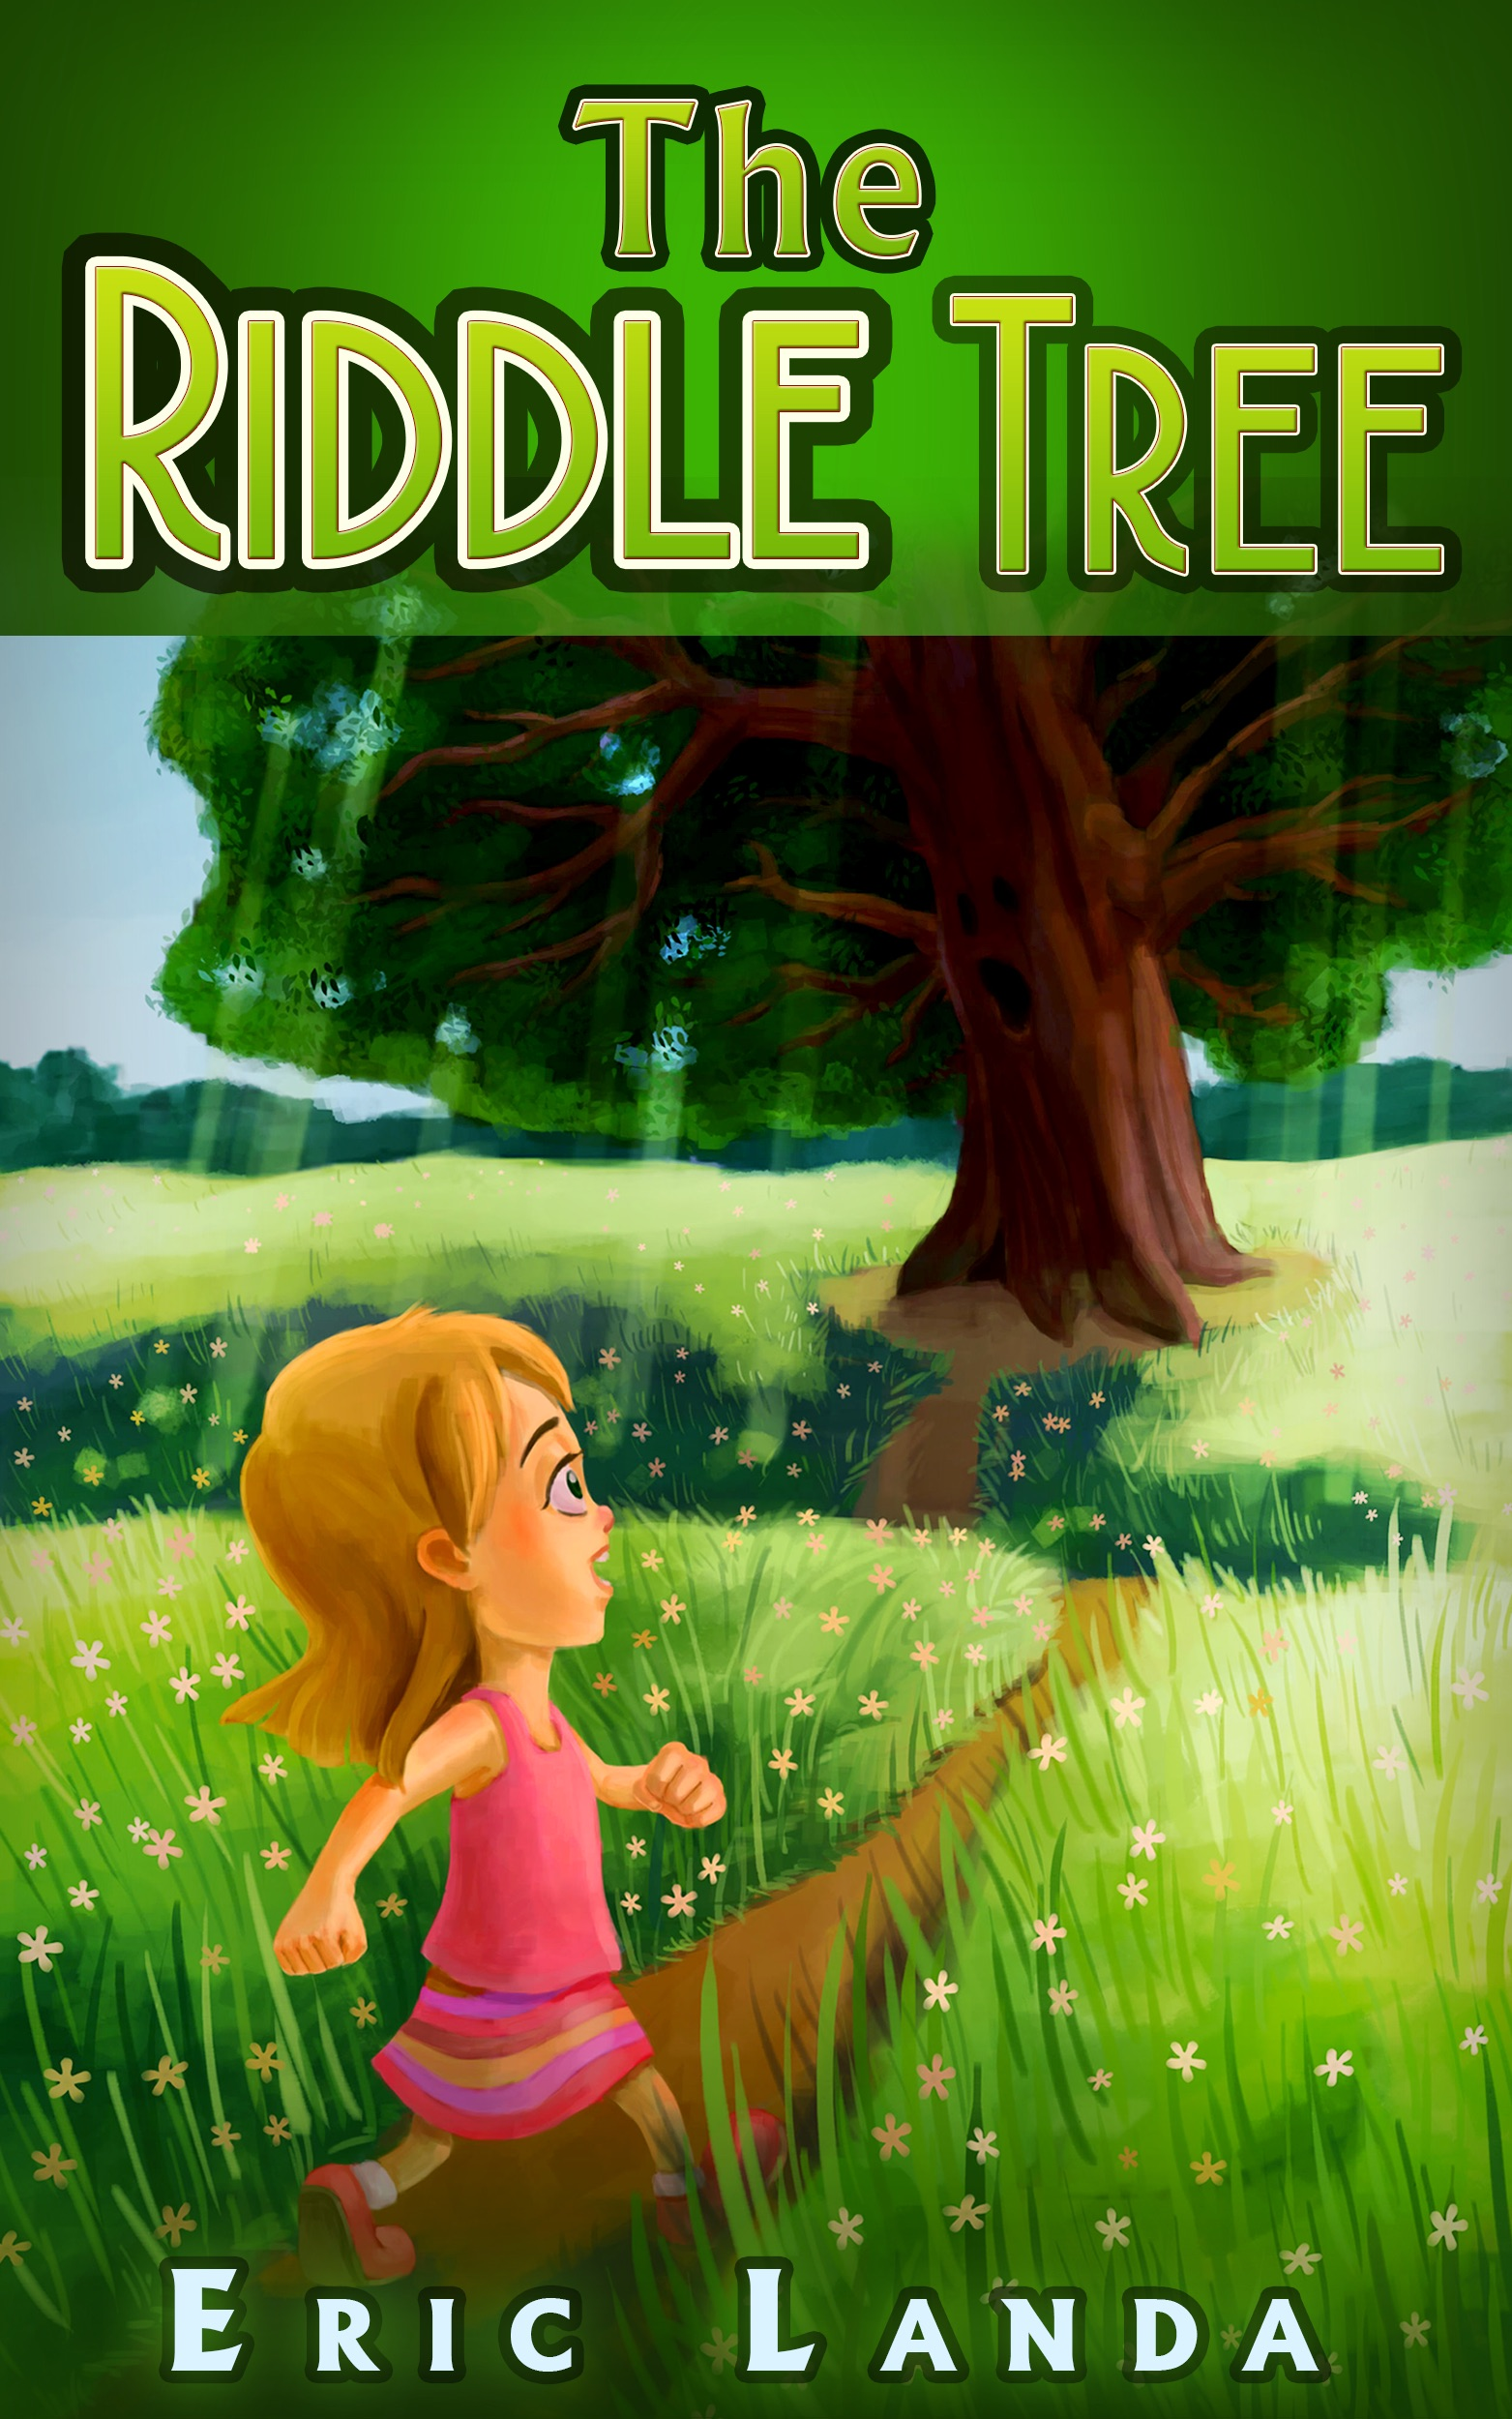 The Riddle Tree, an Ebook by Eric Landa